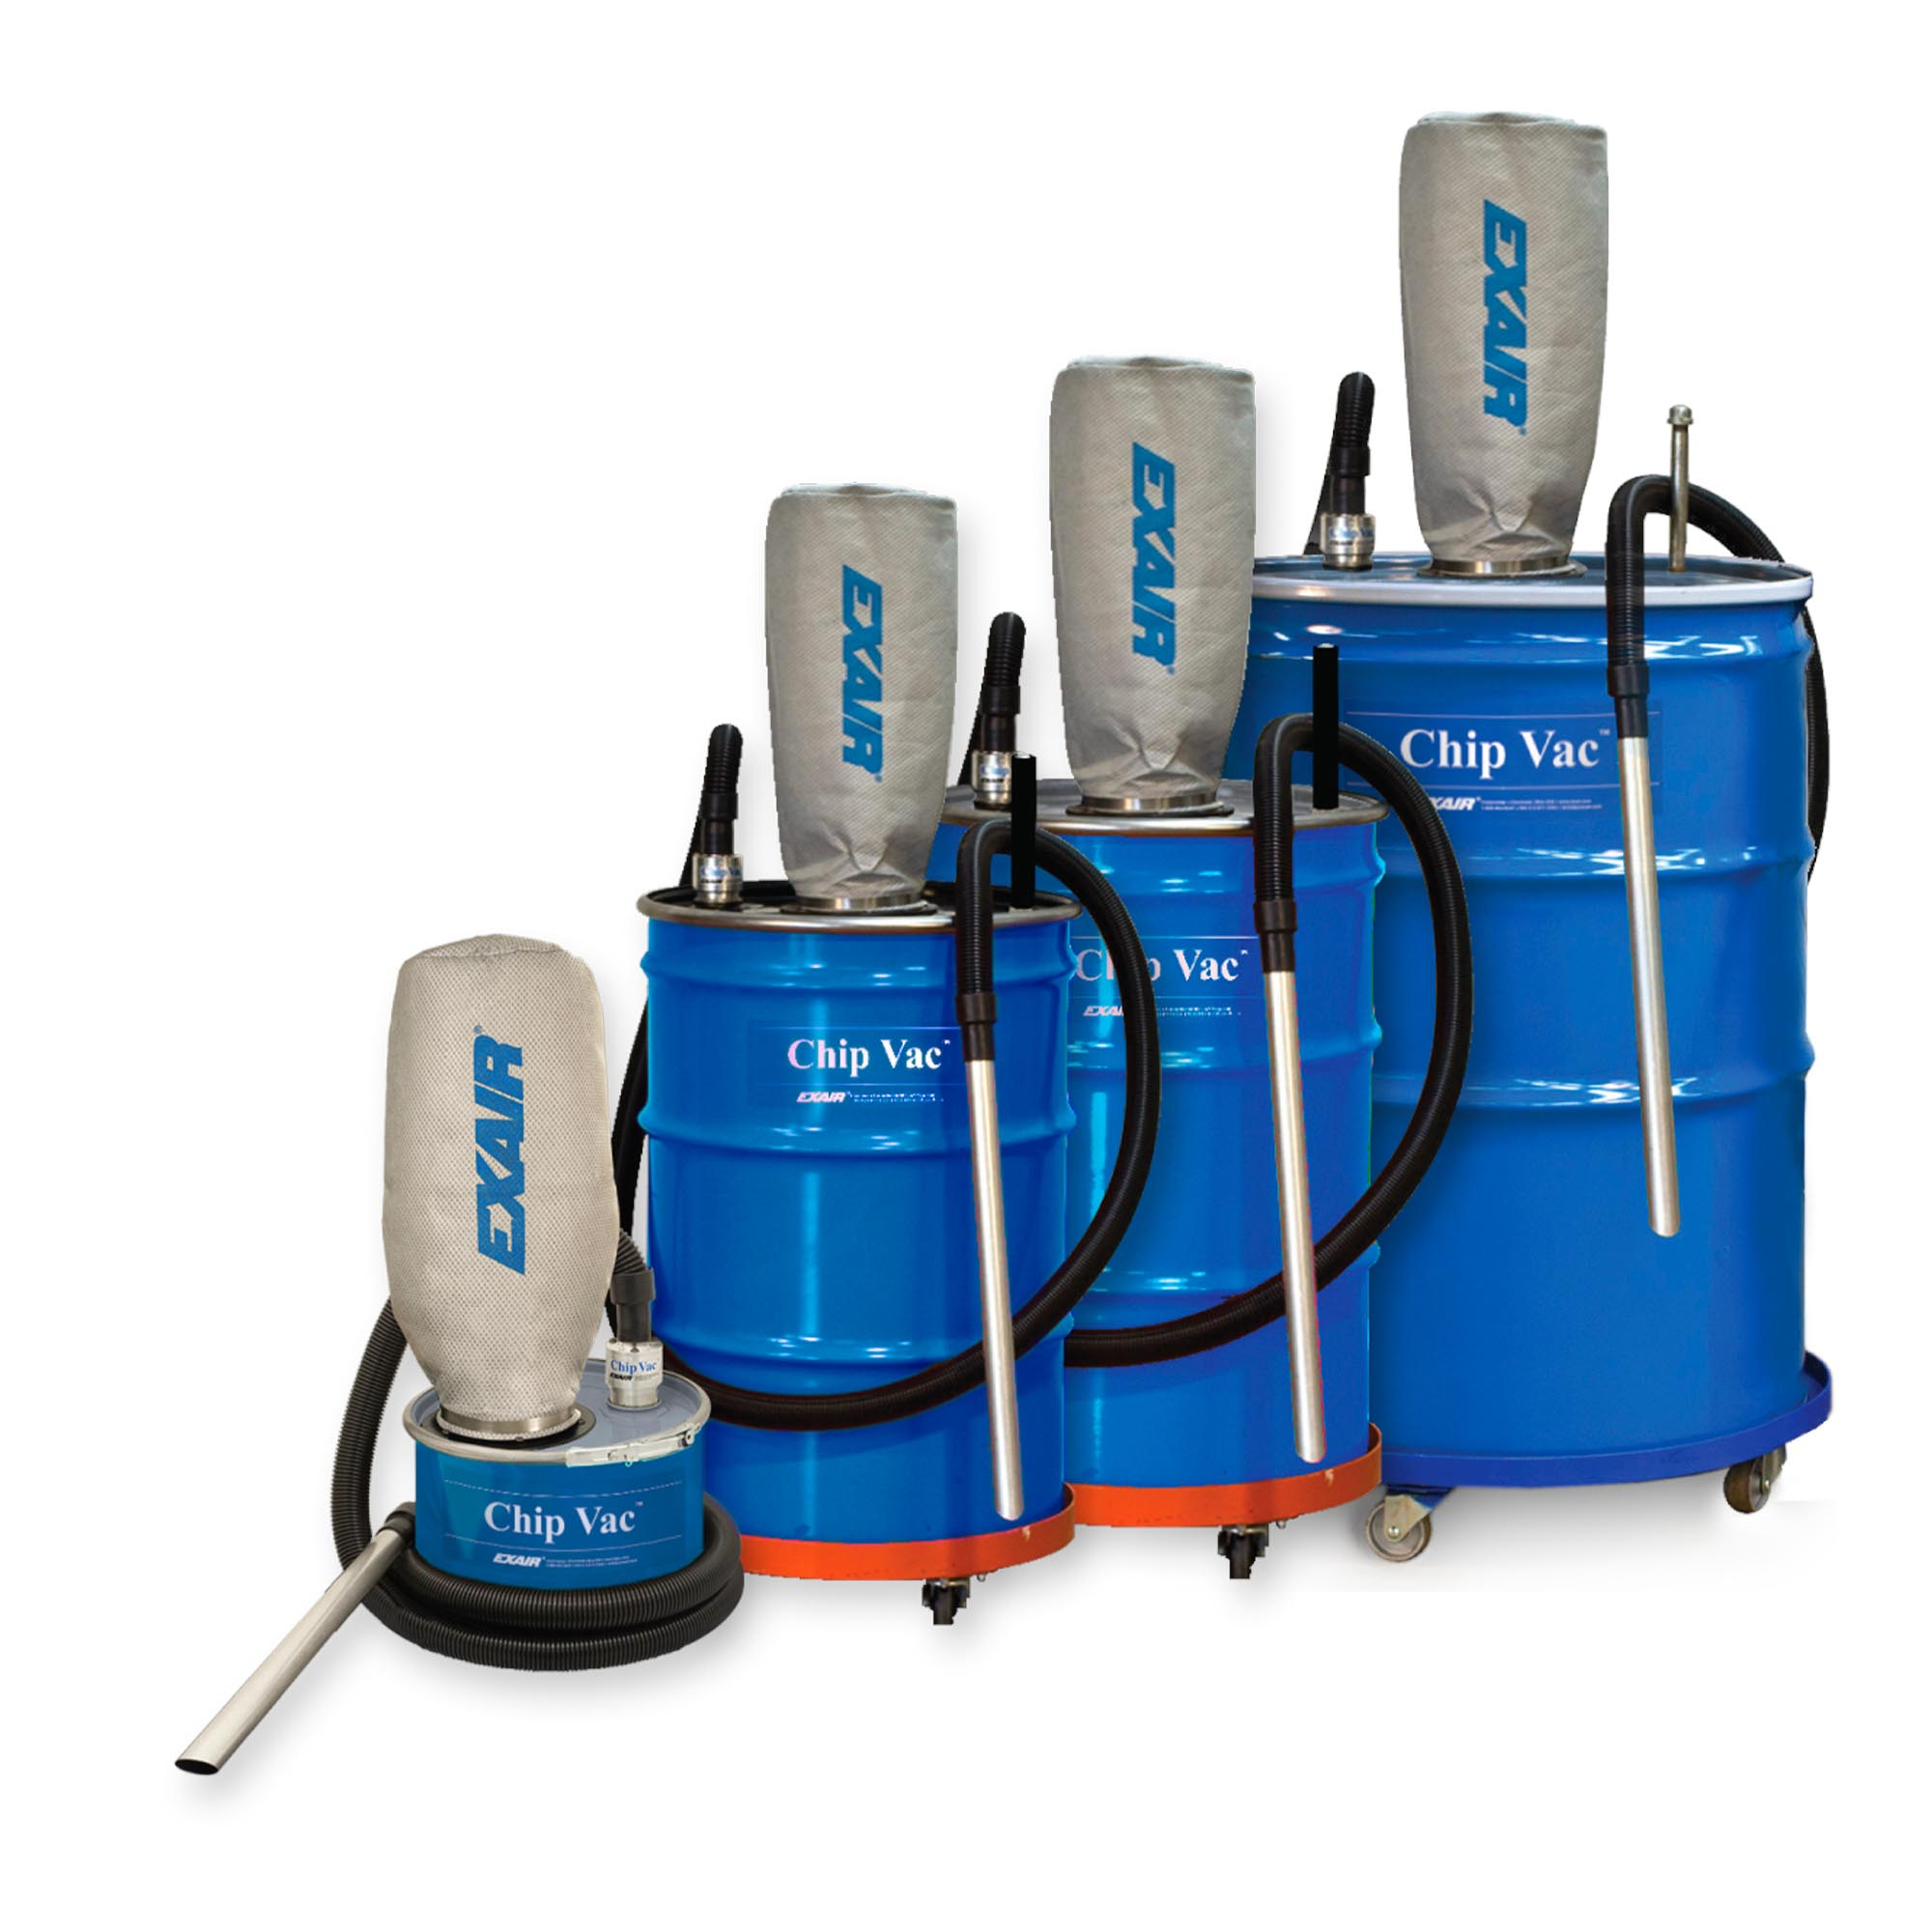 Chip Vac Systems are available in 5, 30, 55 and 110 gallon sizes.